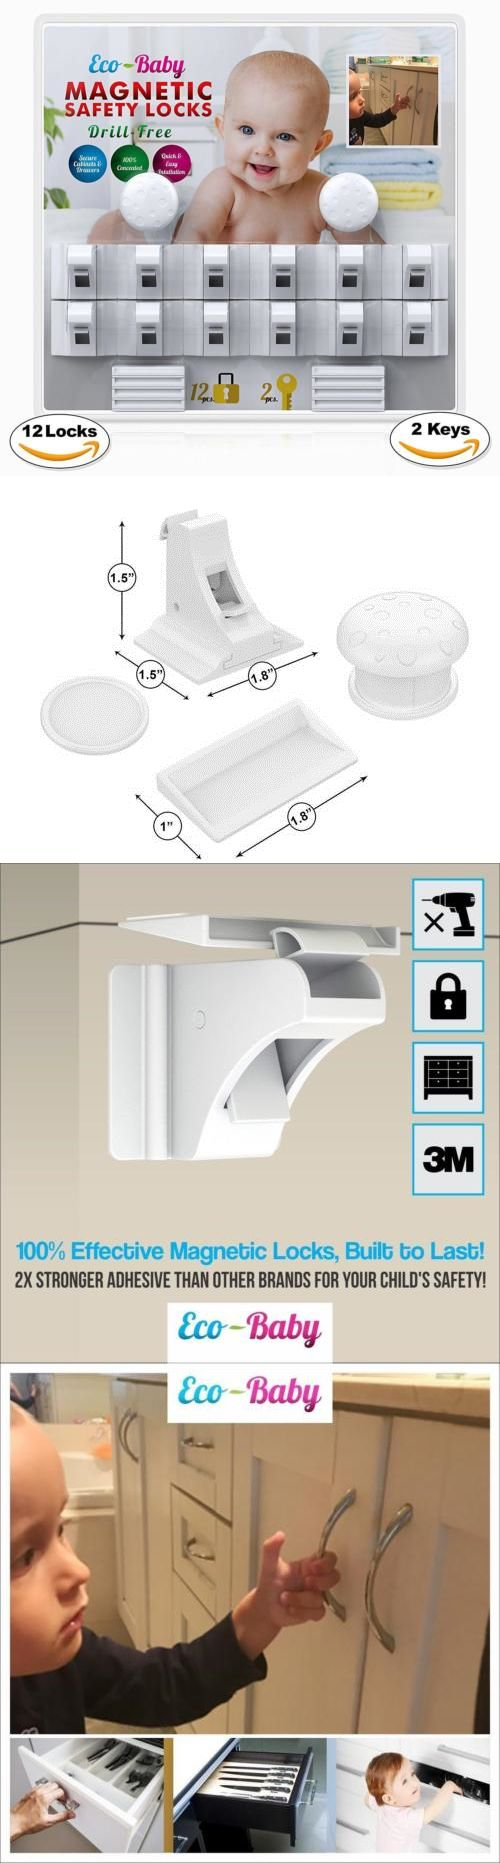 Baby Locks and Latches 117027: Baby Safety Child Proof Home Kitchen Cabinet Door Latch Lock Door Magnetic Locks -> BUY IT NOW ONLY: $36.32 on eBay!